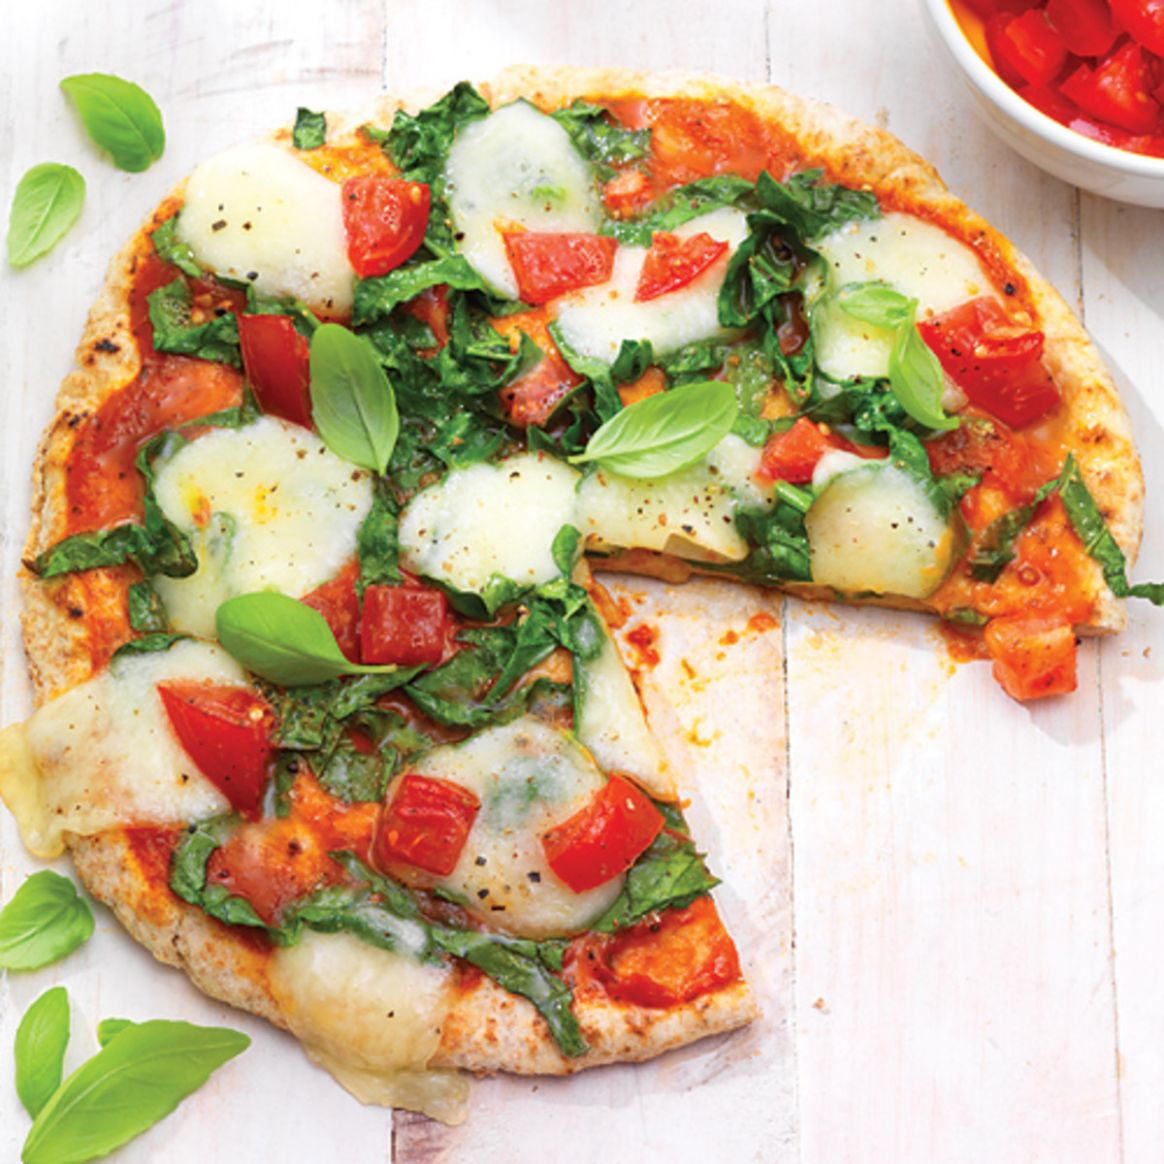 Healthy Personal Pizza Recipe - Clean Eating Magazine